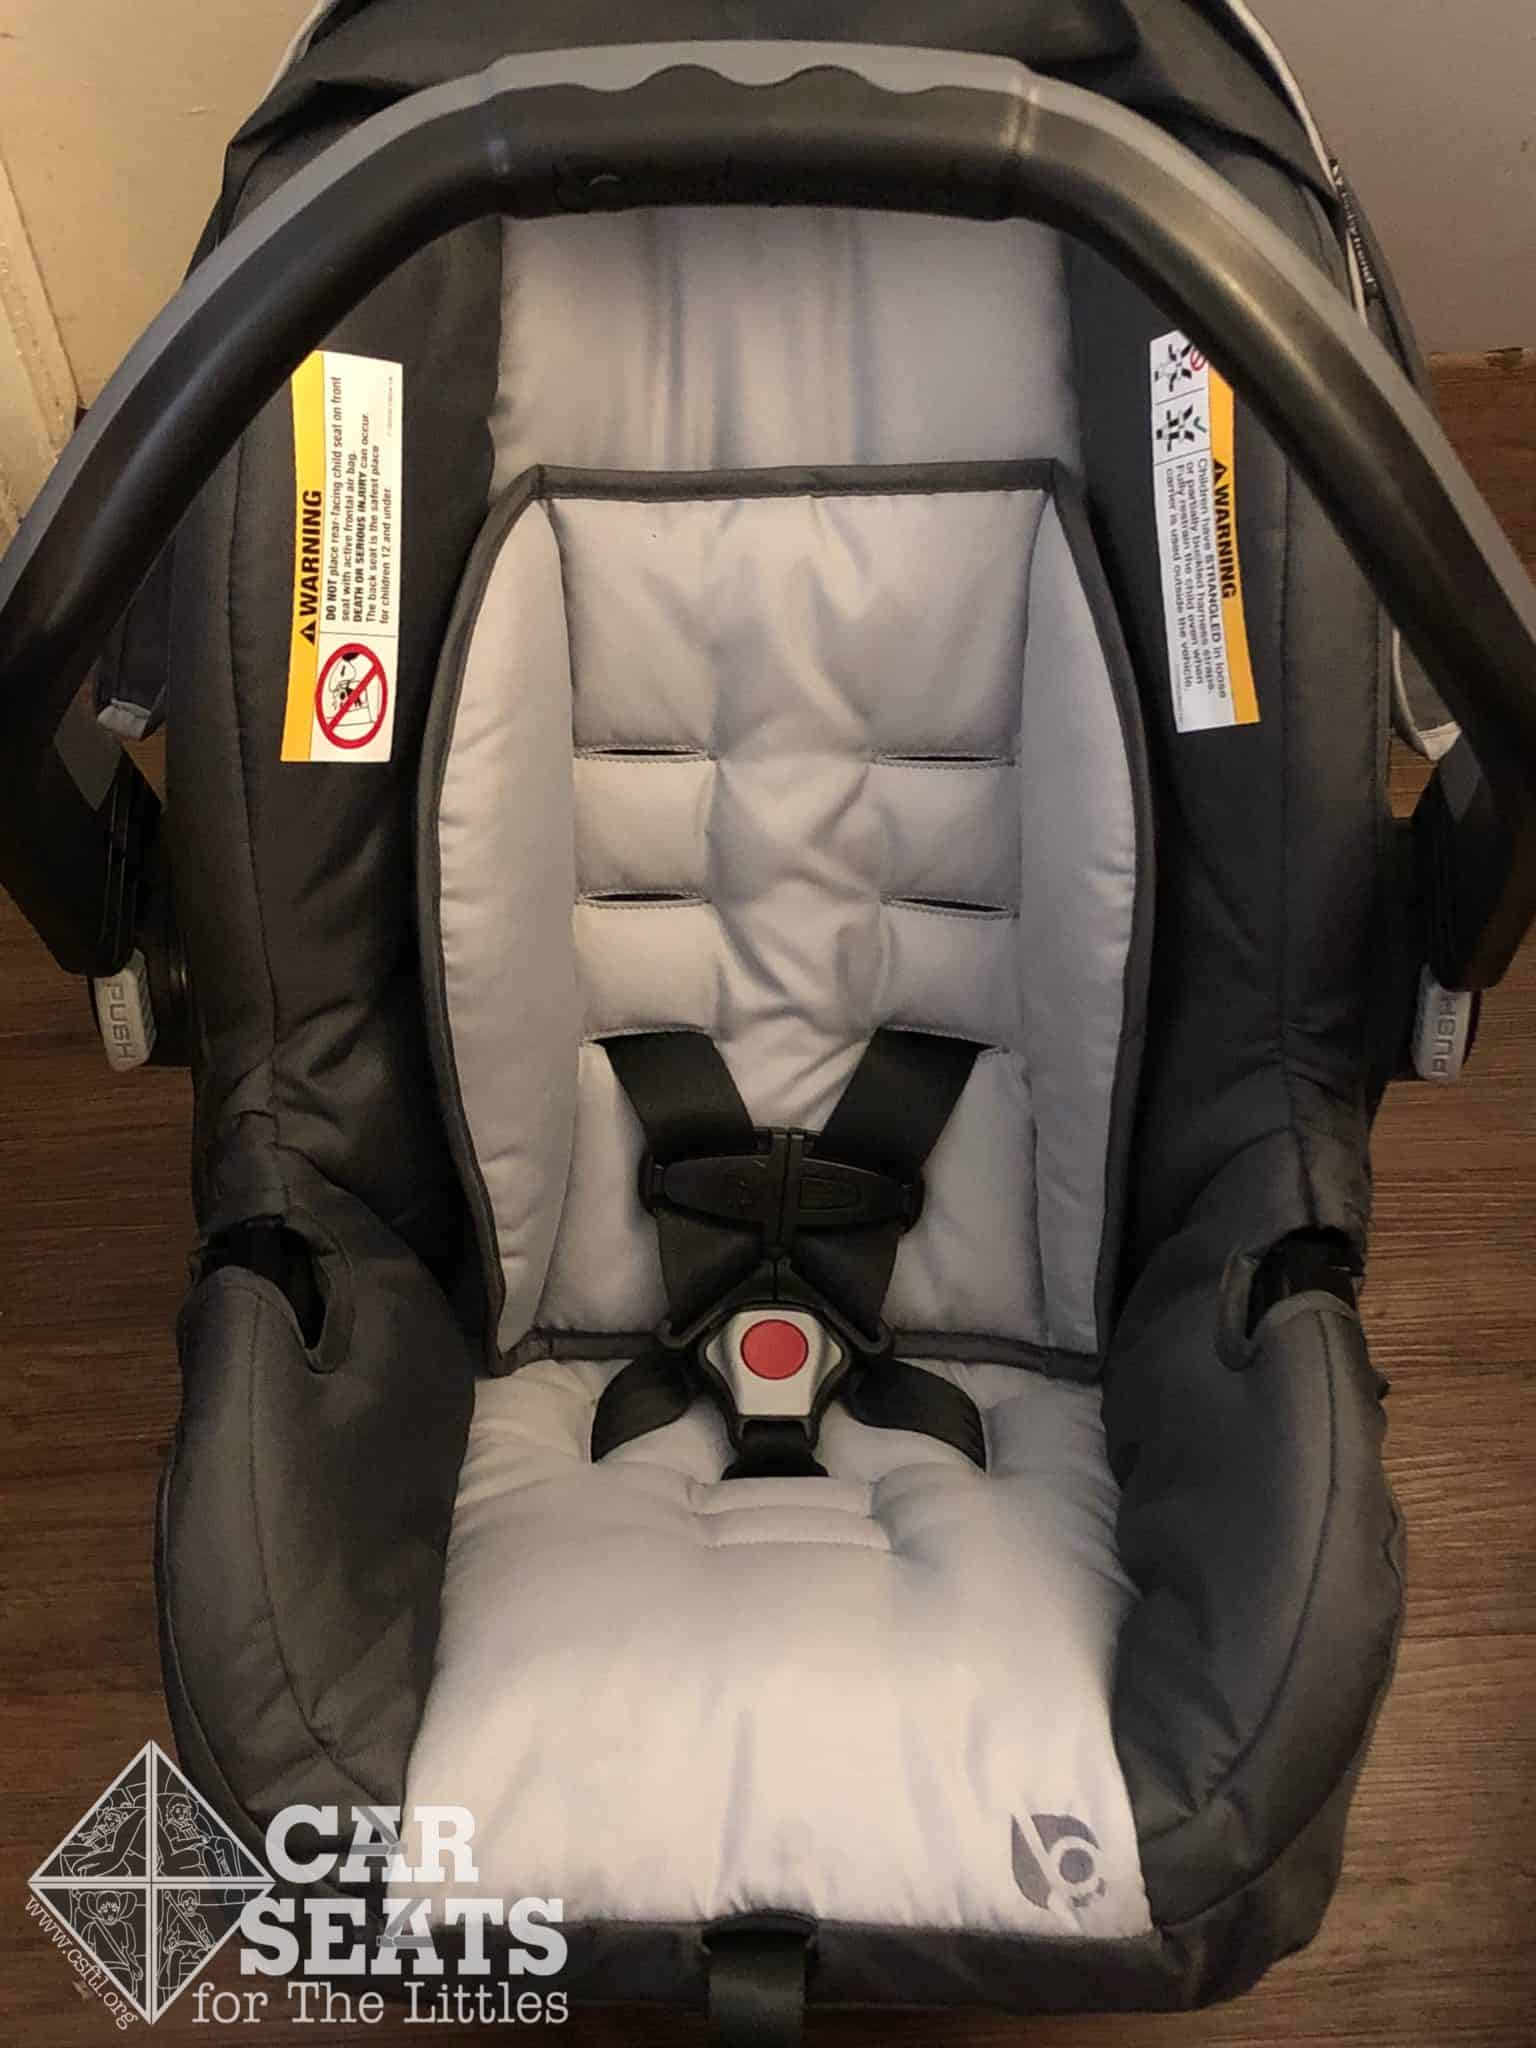 Infant Carrier Car Seat Guide Baby Trend Ally 35 Review Car Seats For The Littles